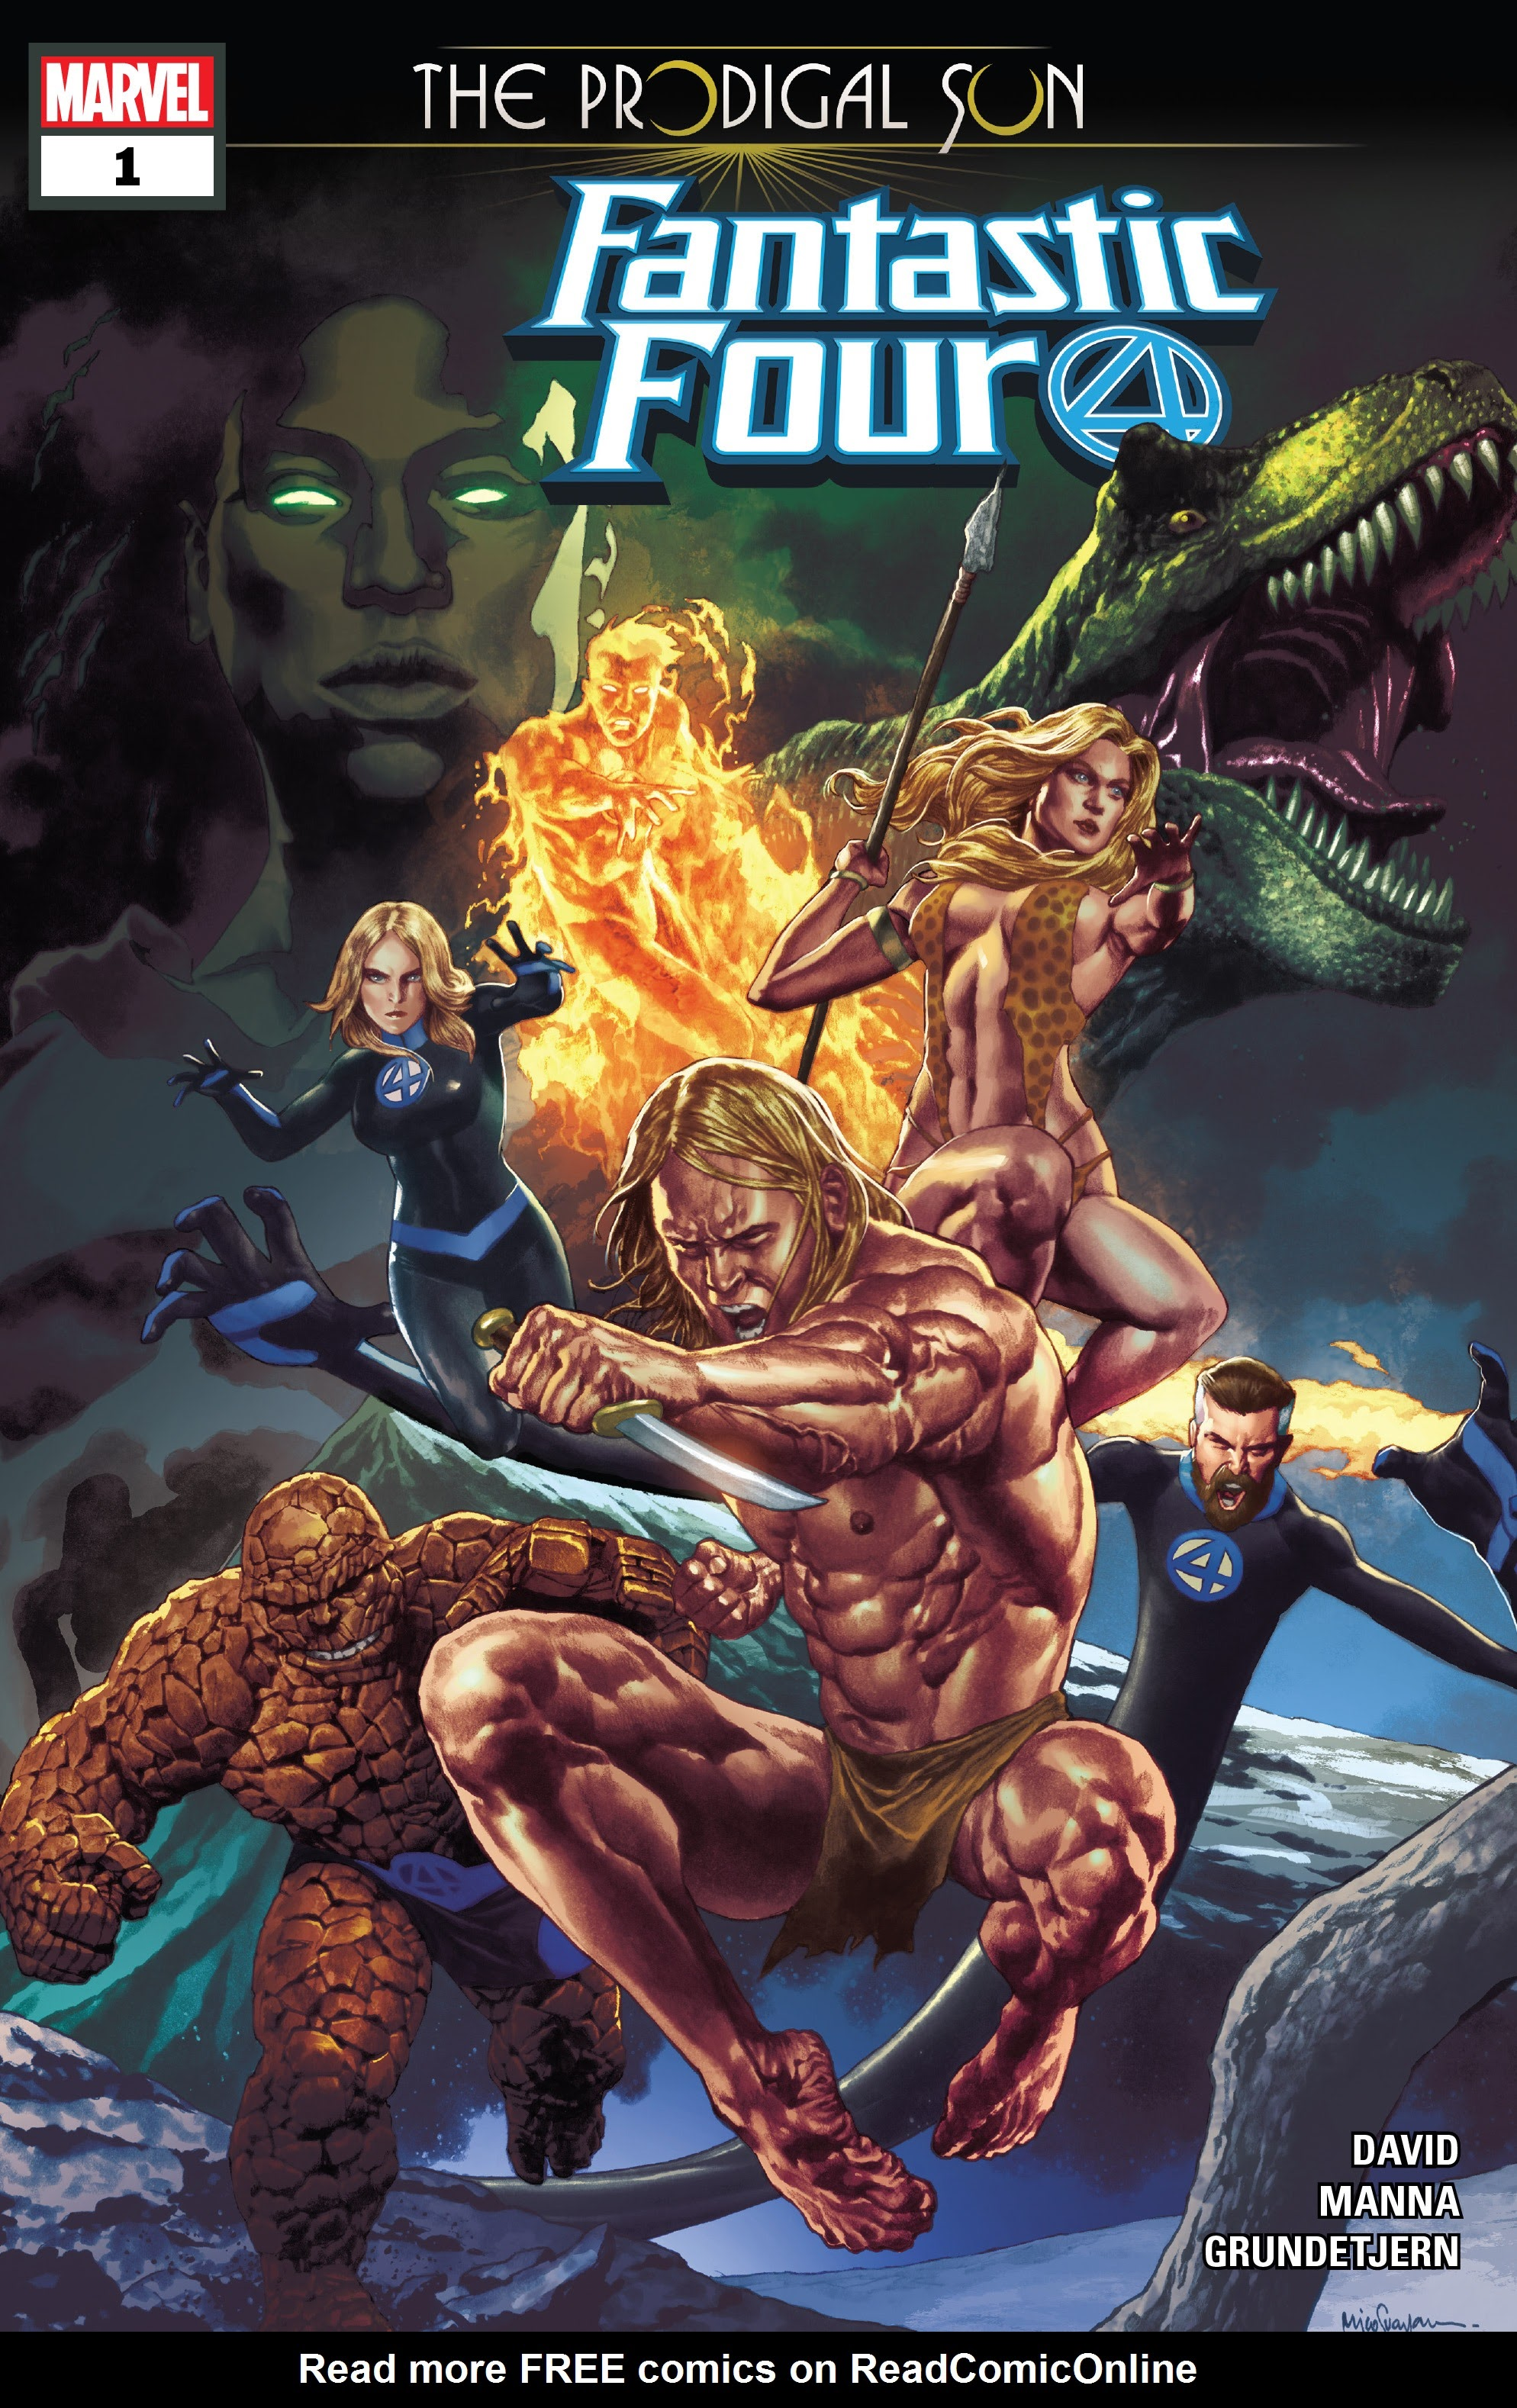 Fantastic Four: The Prodigal Sun Full Page 1